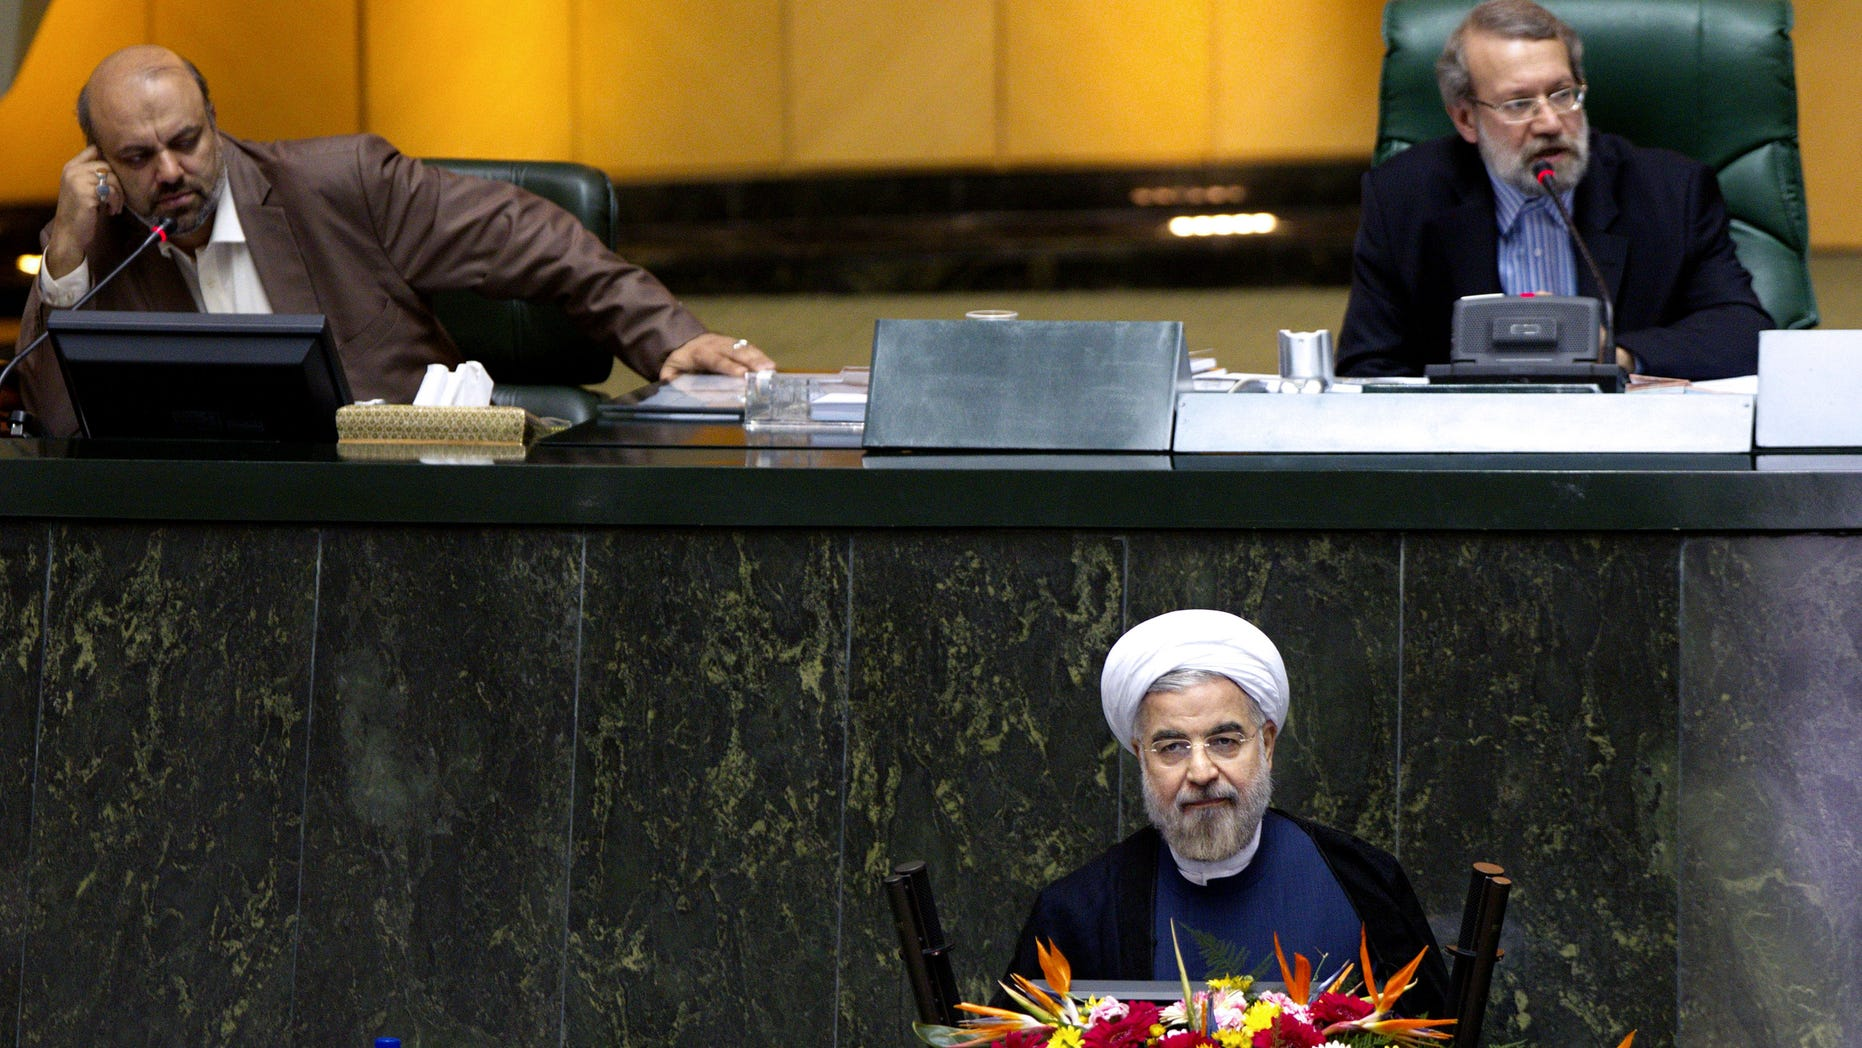 Iranian President Hasan Rouhani, bottom, listens during a parliament session to defend the nominees for the three remaining ministries of his cabinet while parliament speaker Ali Larijani speaks, top right, in Tehran, Iran, Sunday, Oct. 27, 2013. Irans parliament has rejected a close ally of Rouhani for a ministerial post. In a vote Sunday, 141 out of 261 lawmakers present voted against Reza Salehi Amiri, who Rouhani nominated as sports and youth minister. (AP Photo)